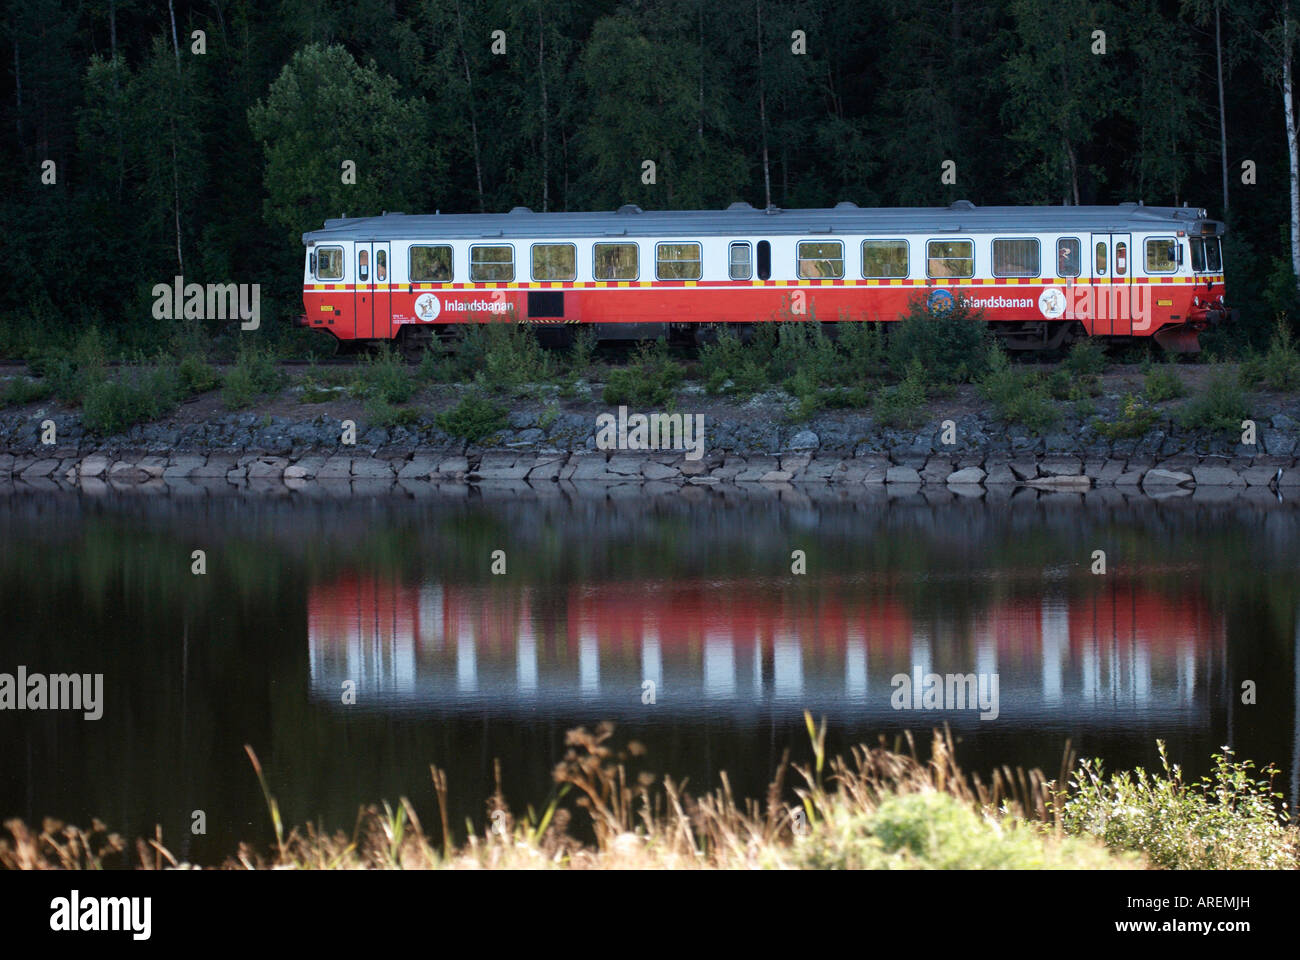 A train of the Swedish Inland Railway at a lake shore Tansjoborg Dalarna Sweden August 2007 - Stock Image